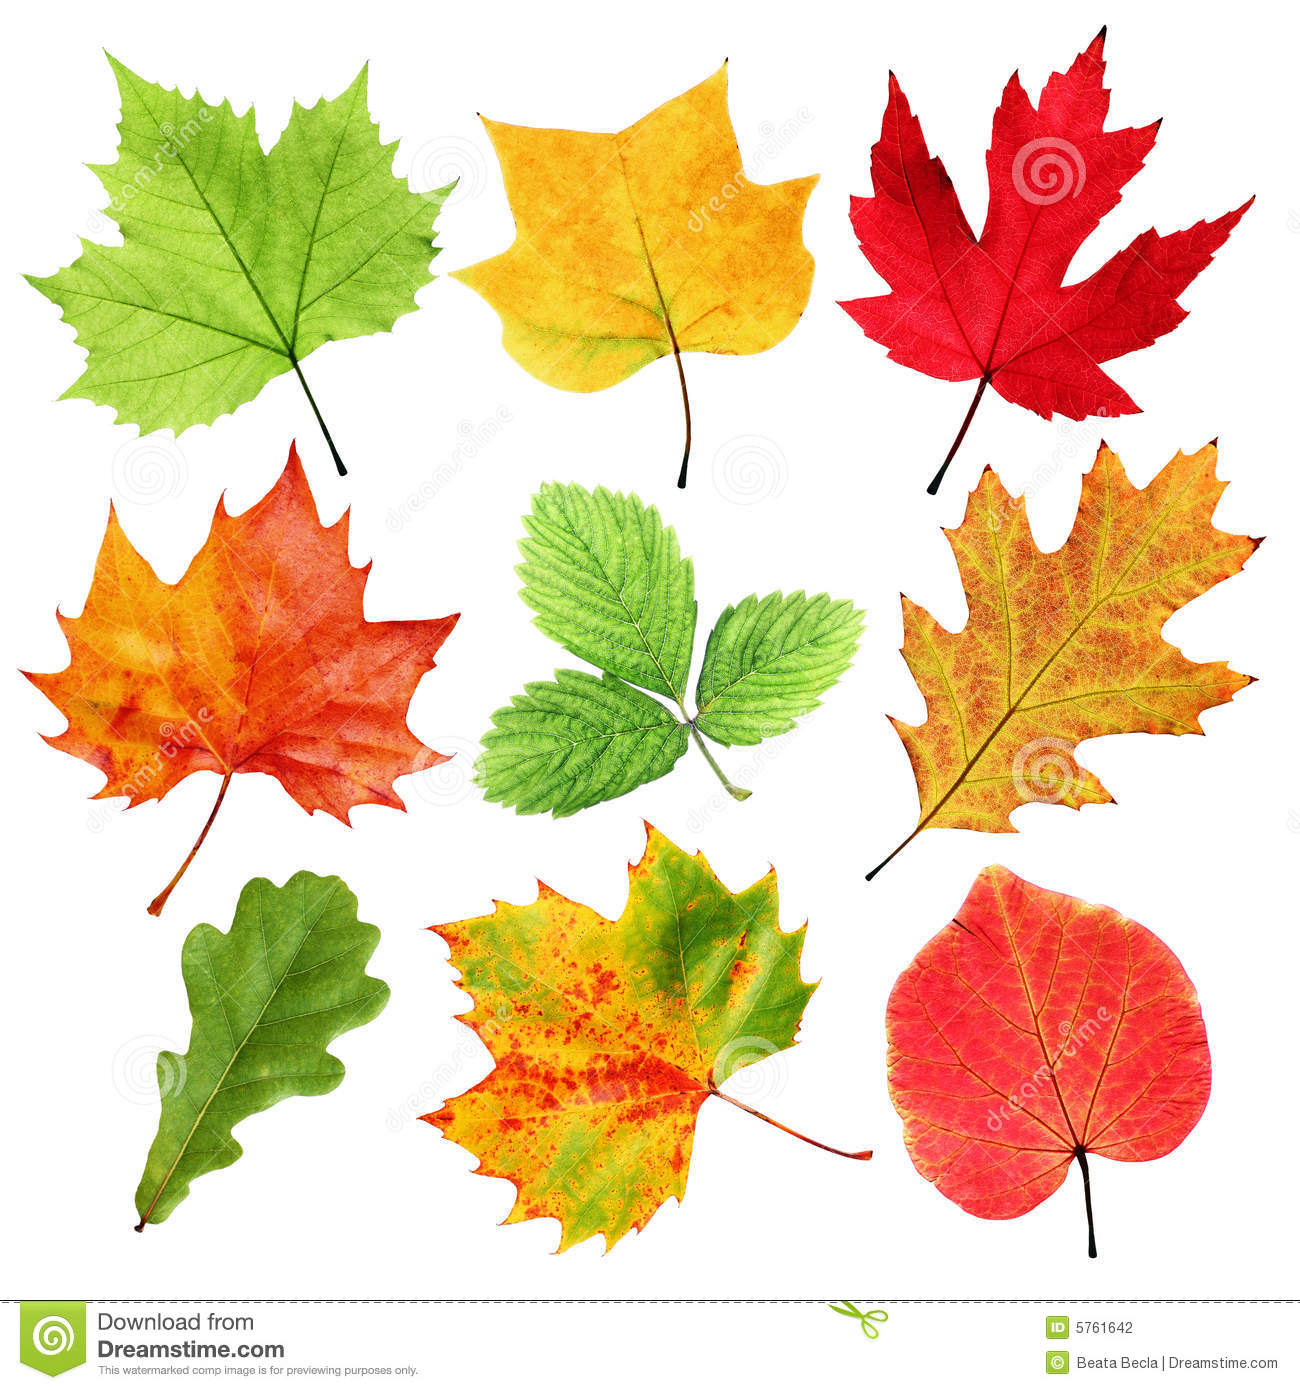 http://thumbs.dreamstime.com/z/colorful-leaves-5761642.jpg